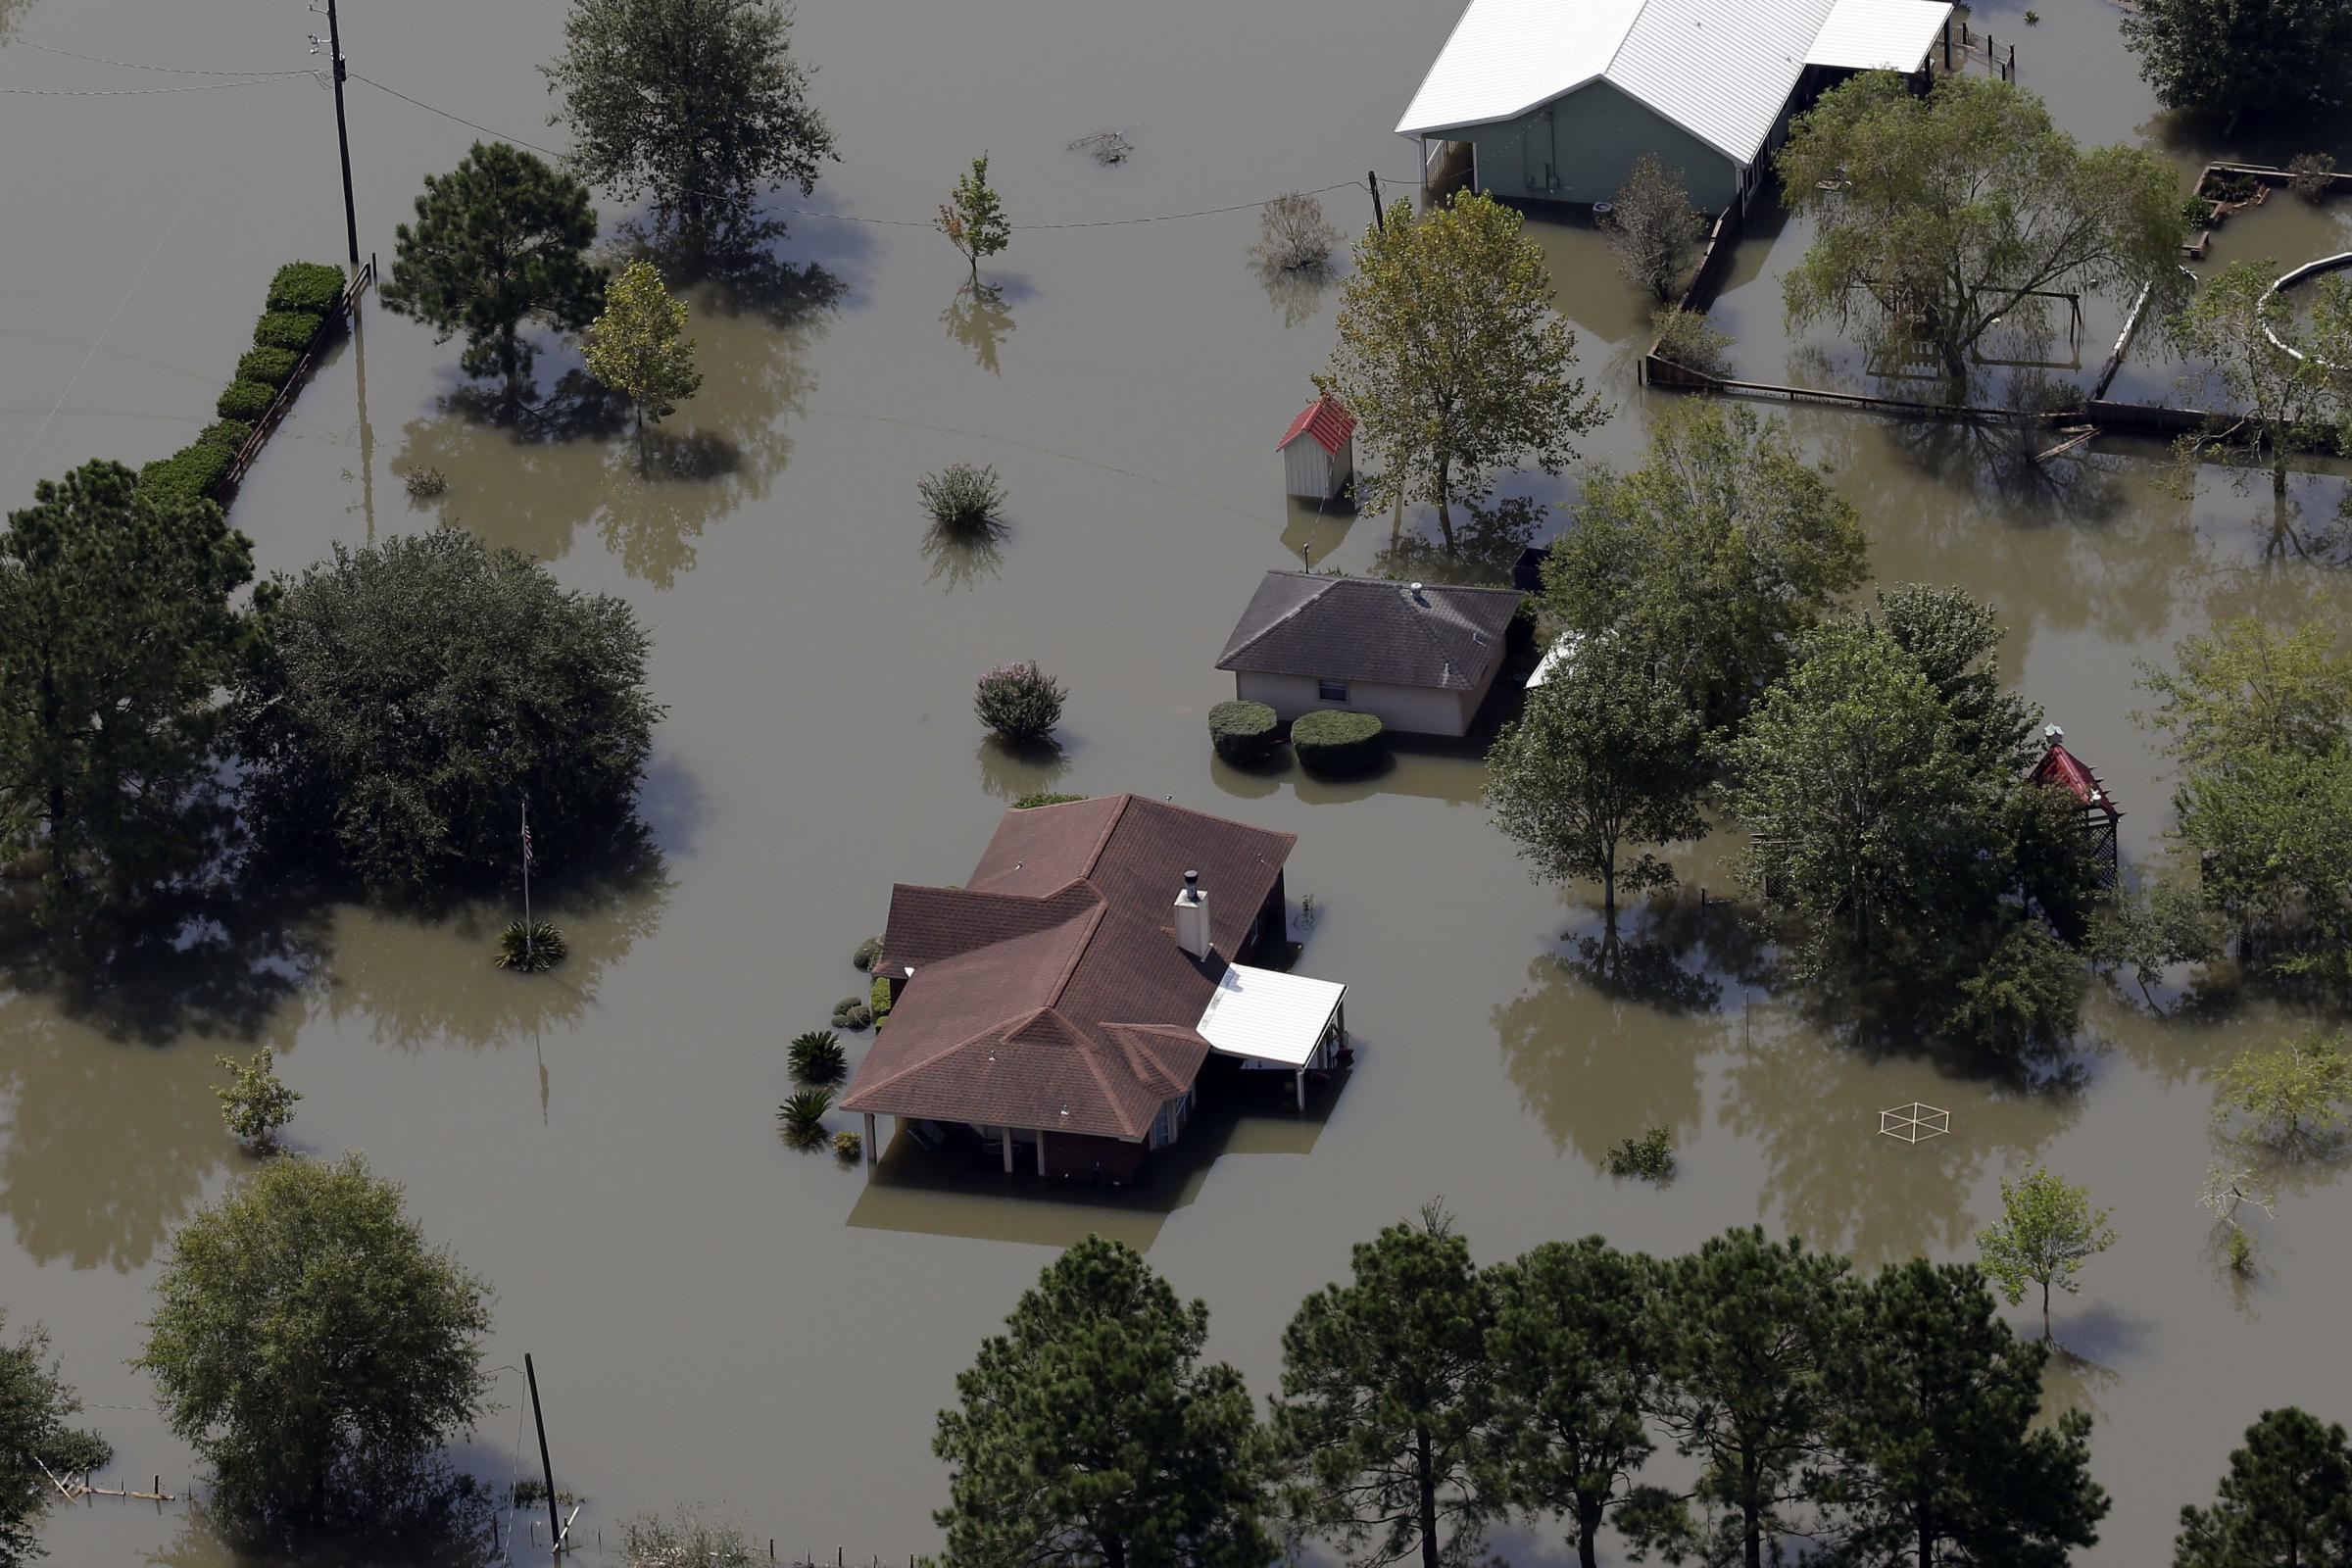 Homes are surrounded by floodwaters in the aftermath of Hurricane Harvey near Beaumont Texas on Friday